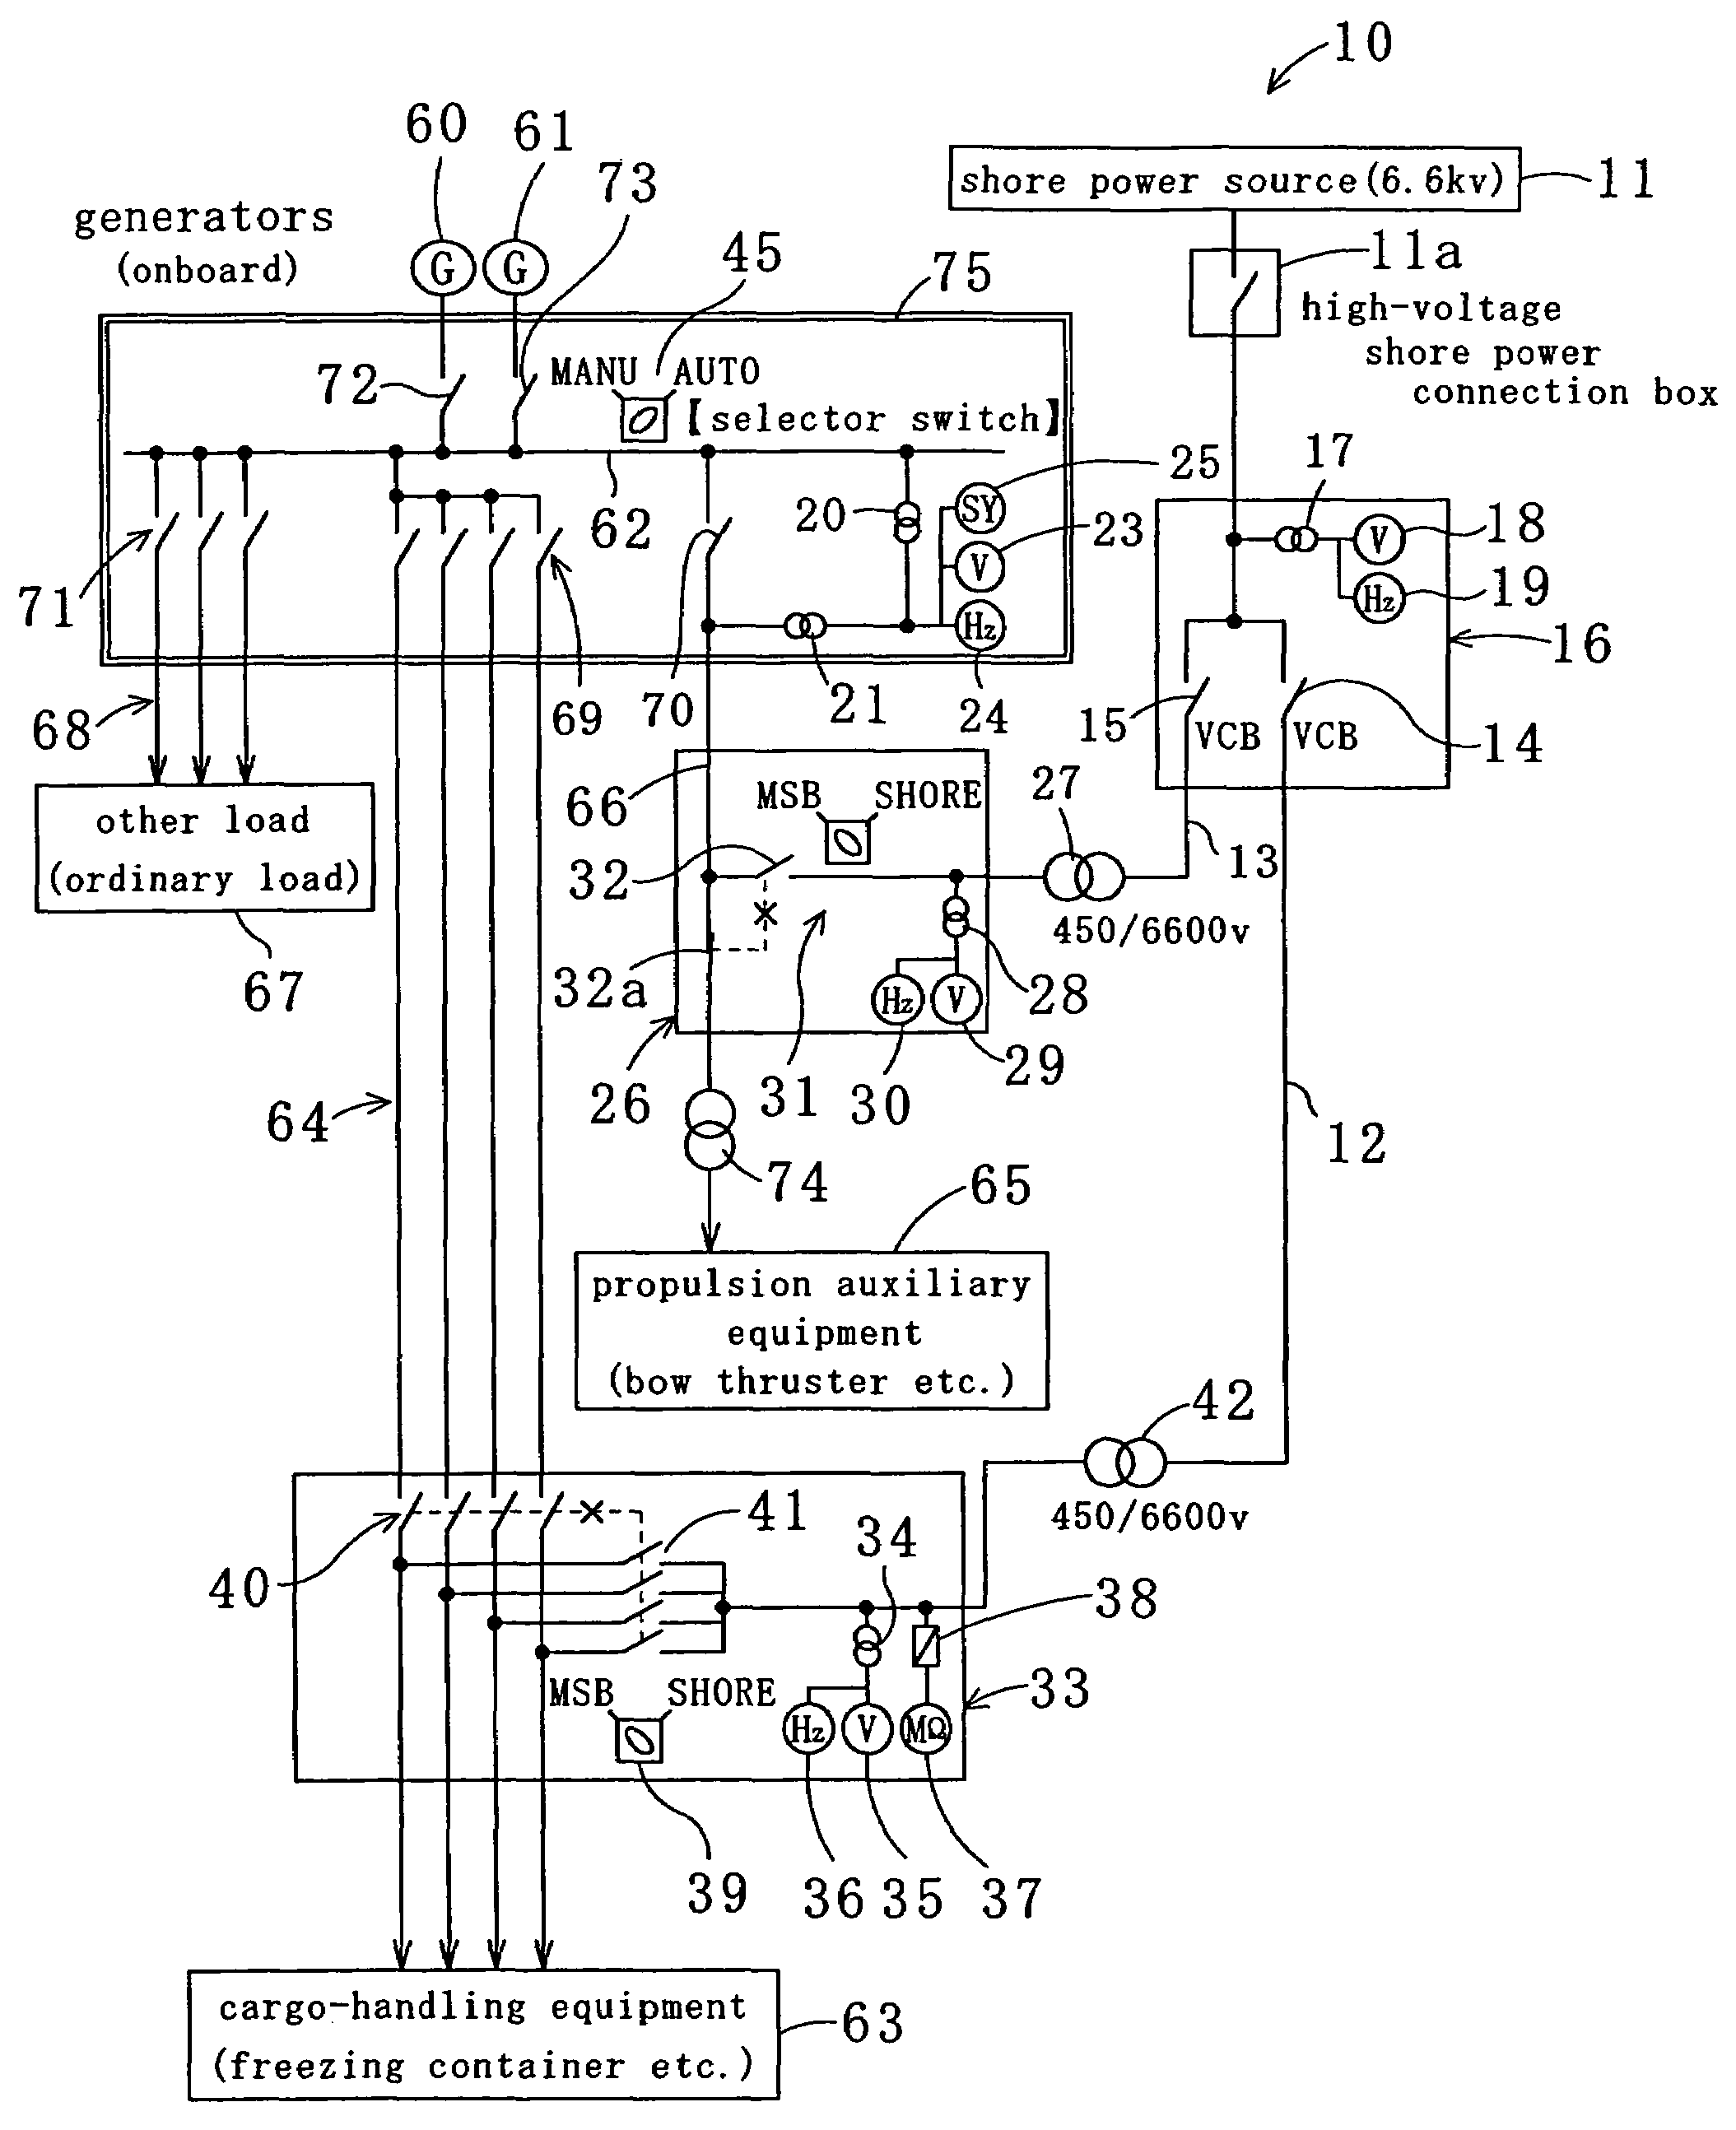 US07253538 20070807 D00000 patent us7253538 method of supplying electric power from shore vcb panel wiring diagram at pacquiaovsvargaslive.co